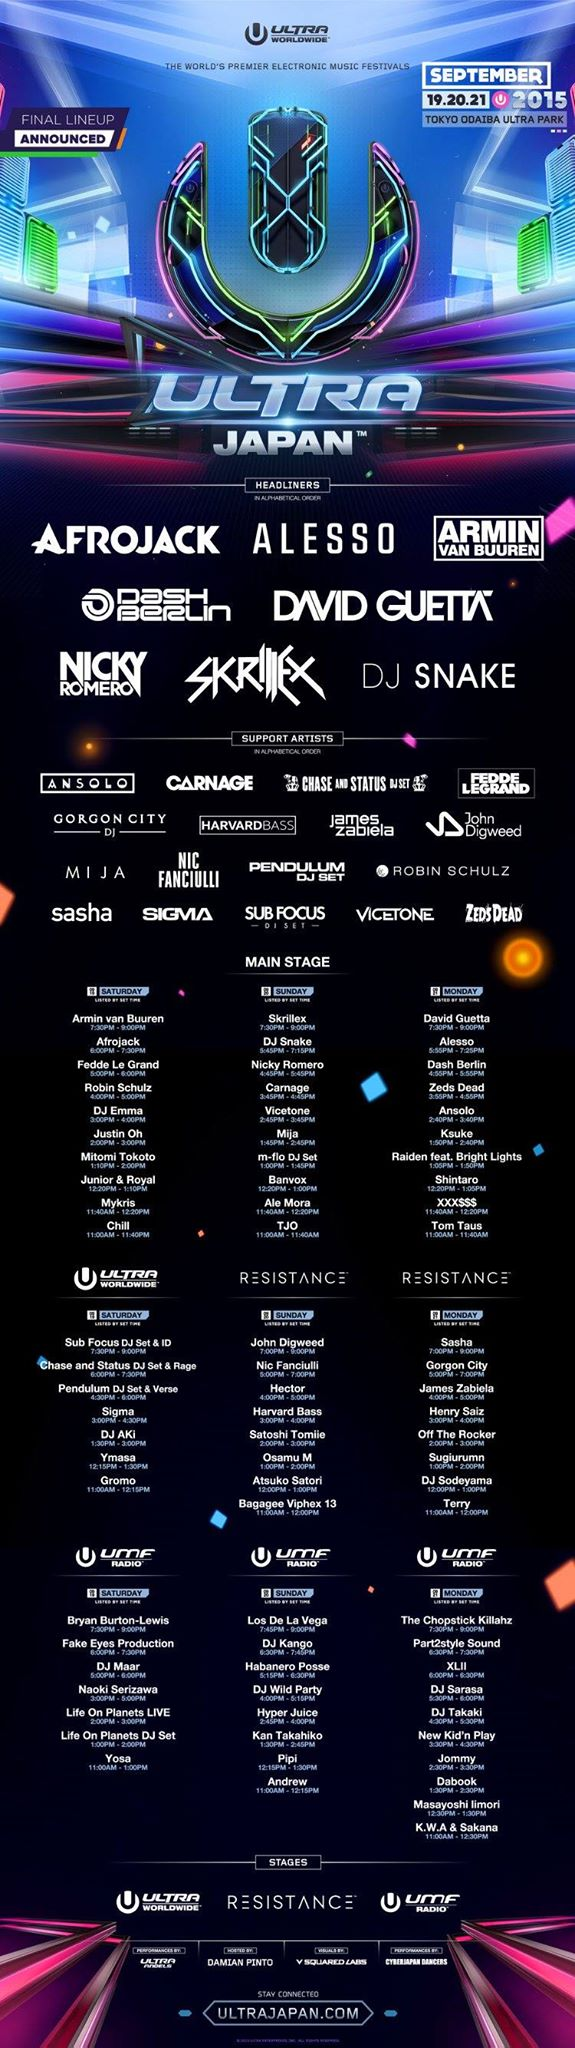 ULTRA JAPAN 2015 TIMETABLE